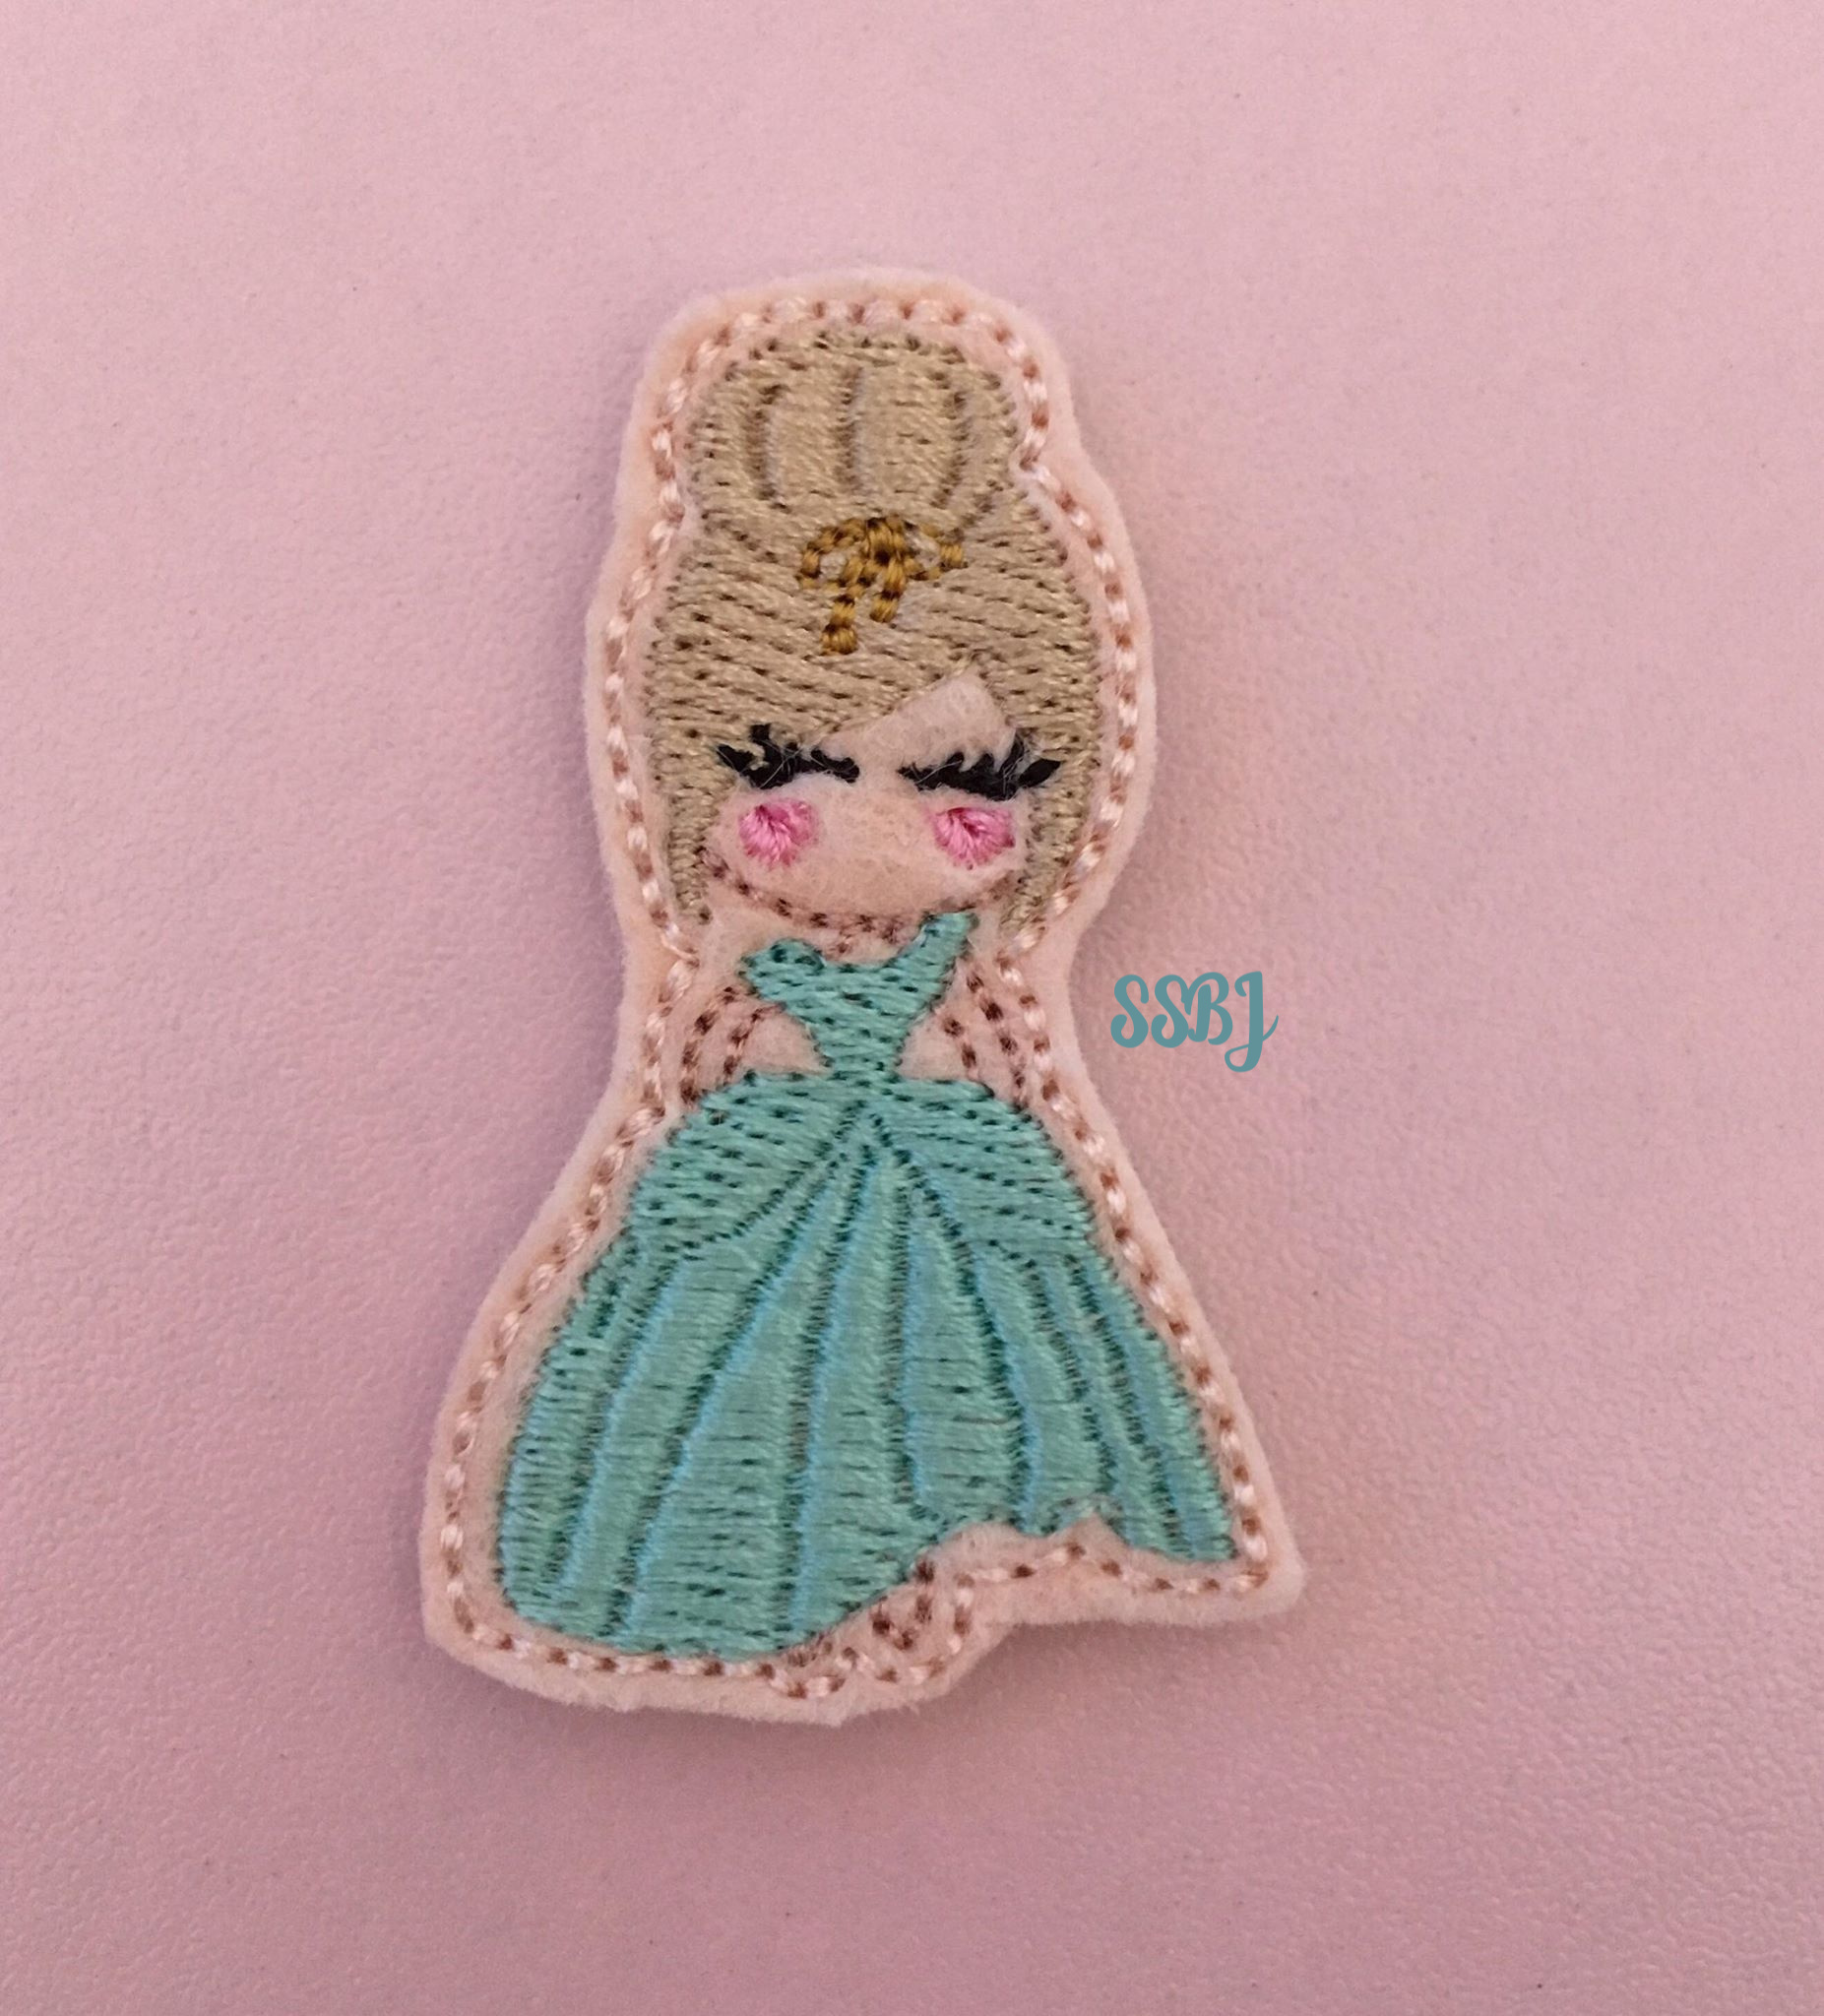 SSBJ Princess Ella Embroidery File